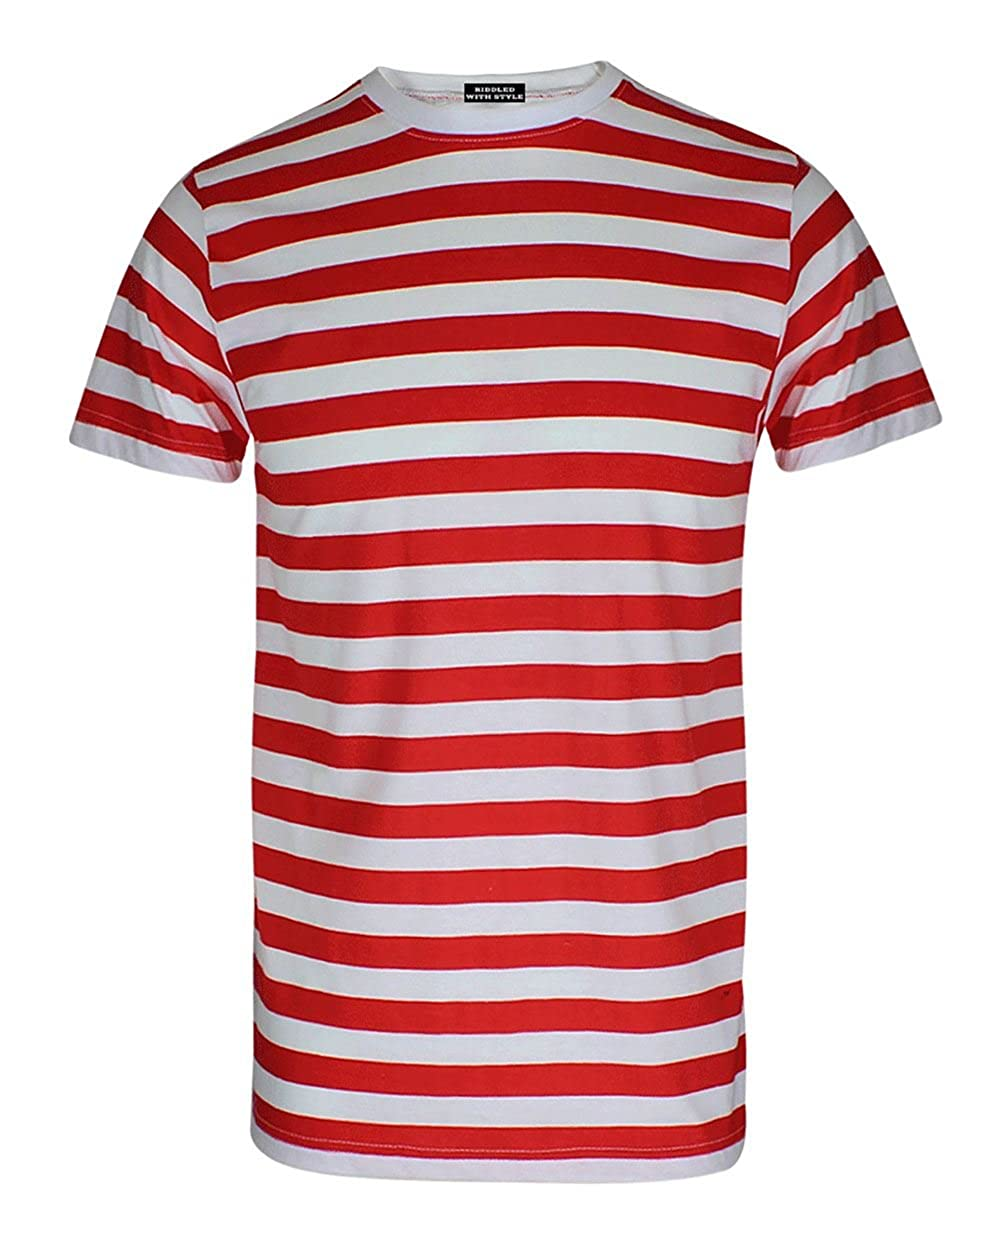 10dae91997 Where Can I Get A Red And White Striped Shirt   Top Mode Depot